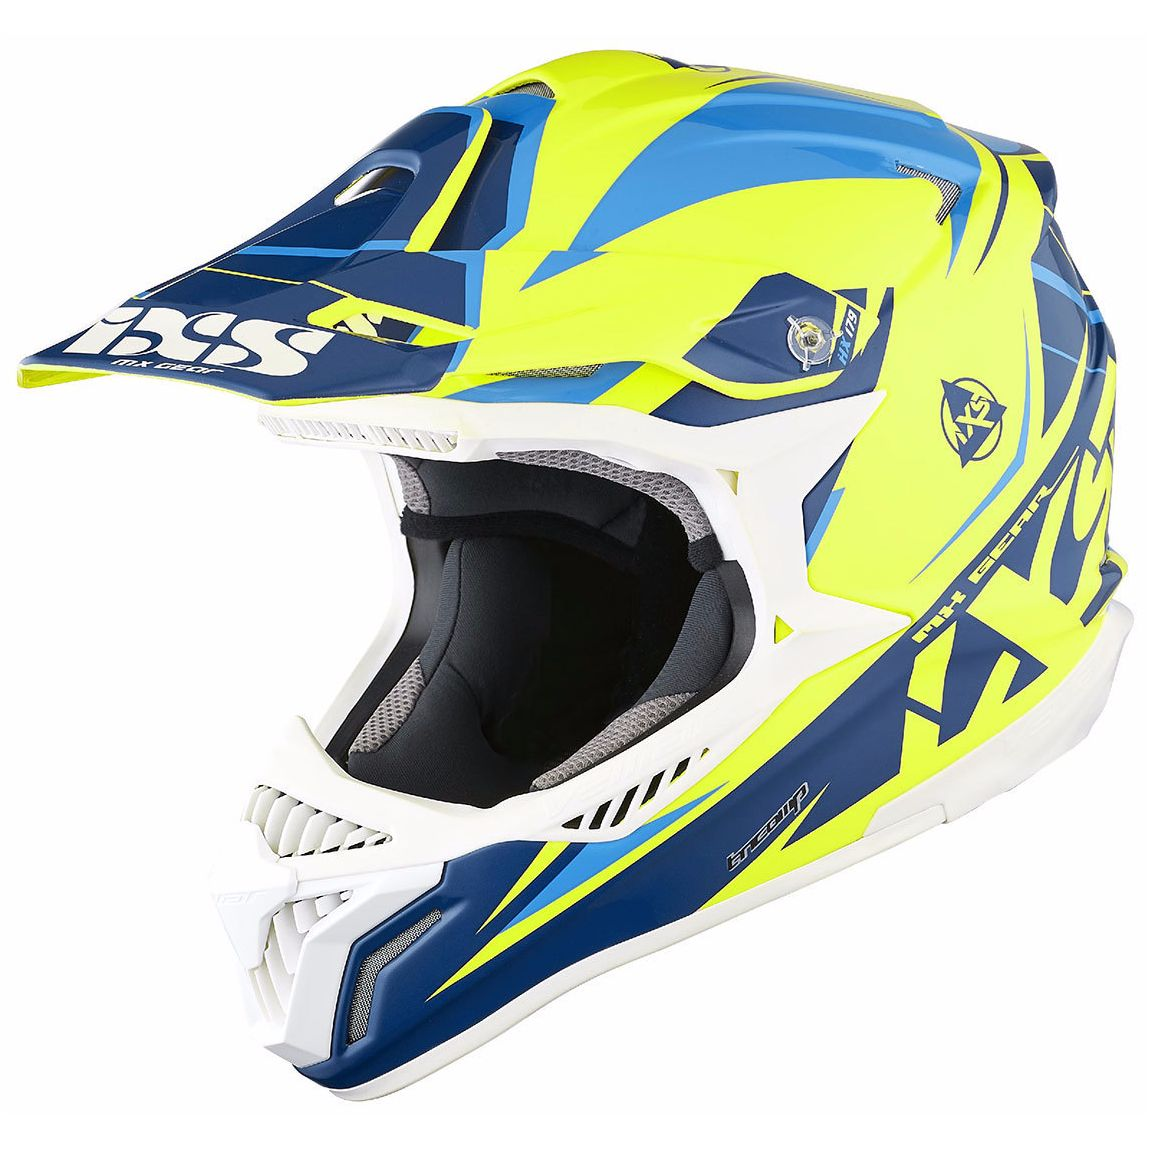 Casque Cross Ixs Hx179 Flash - Jaune Bleu